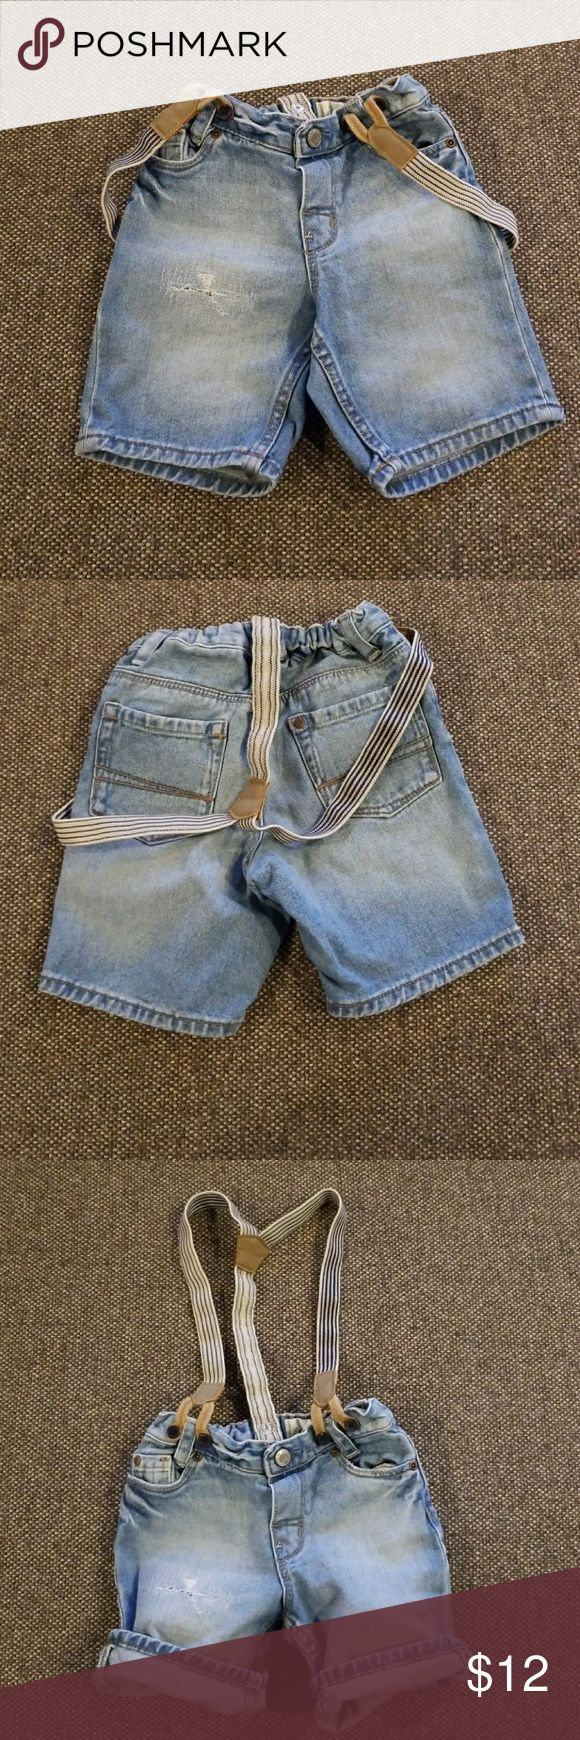 H&M jean suspender shorts H&M jean suspender shorts  | 1 1/2 - 2 Y | H&M Bottoms Shorts